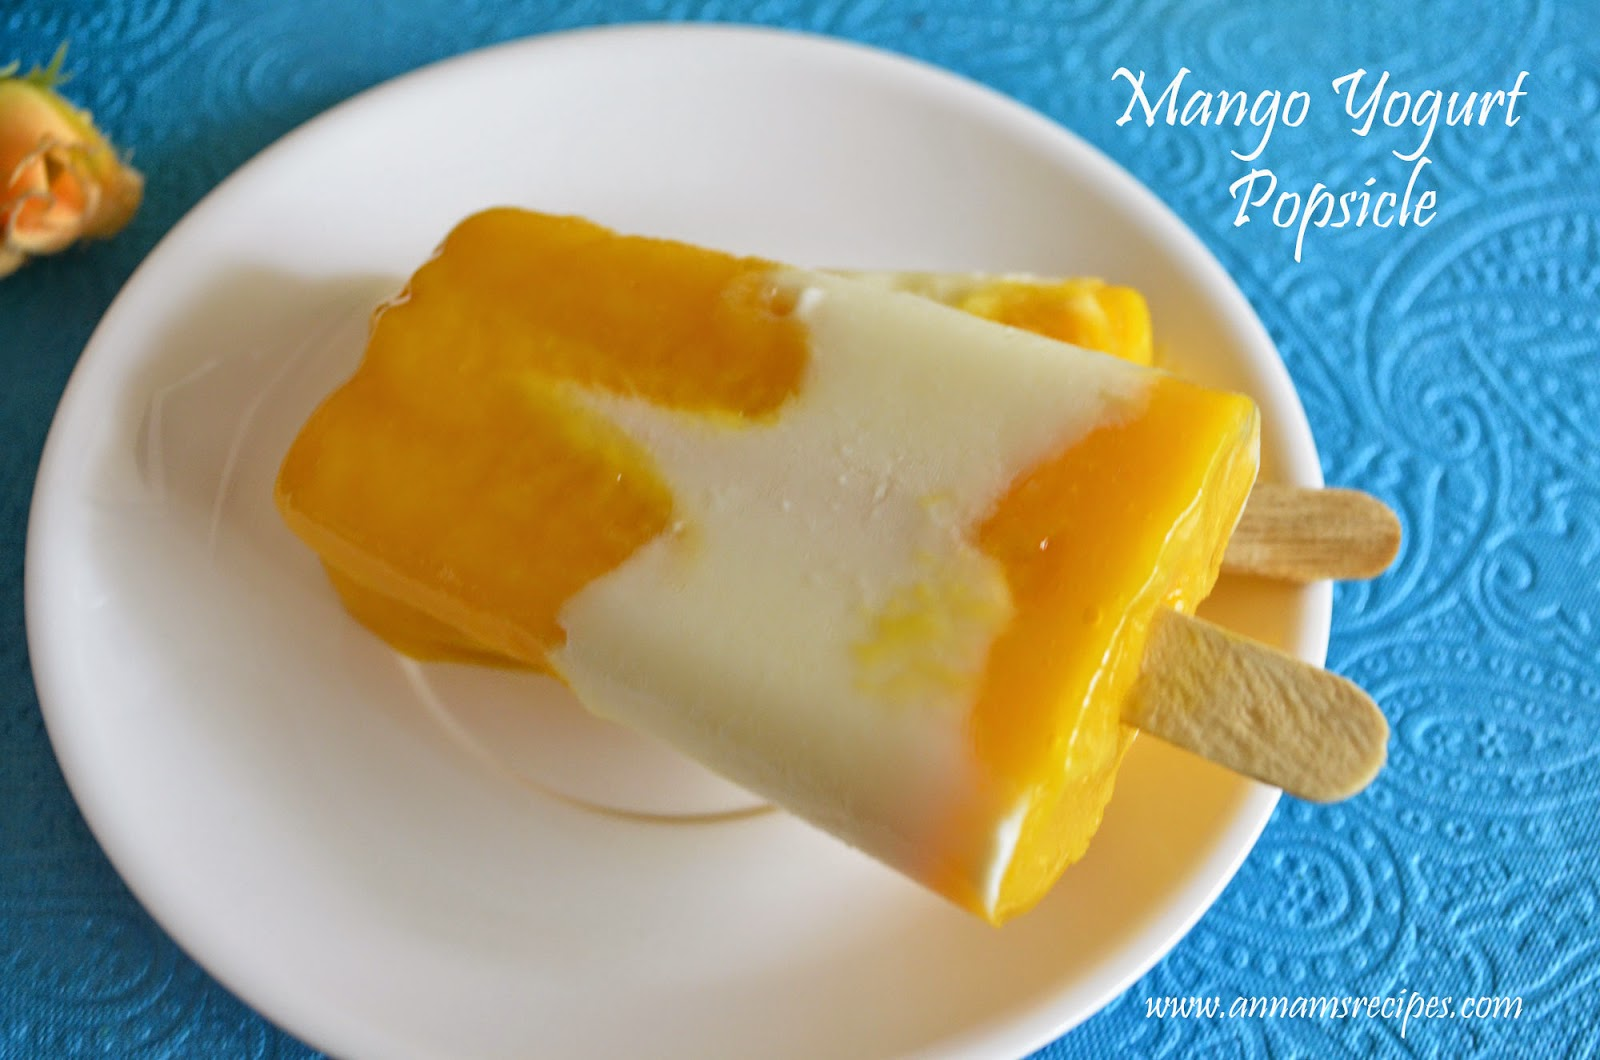 Mango Yogurt Popsicle